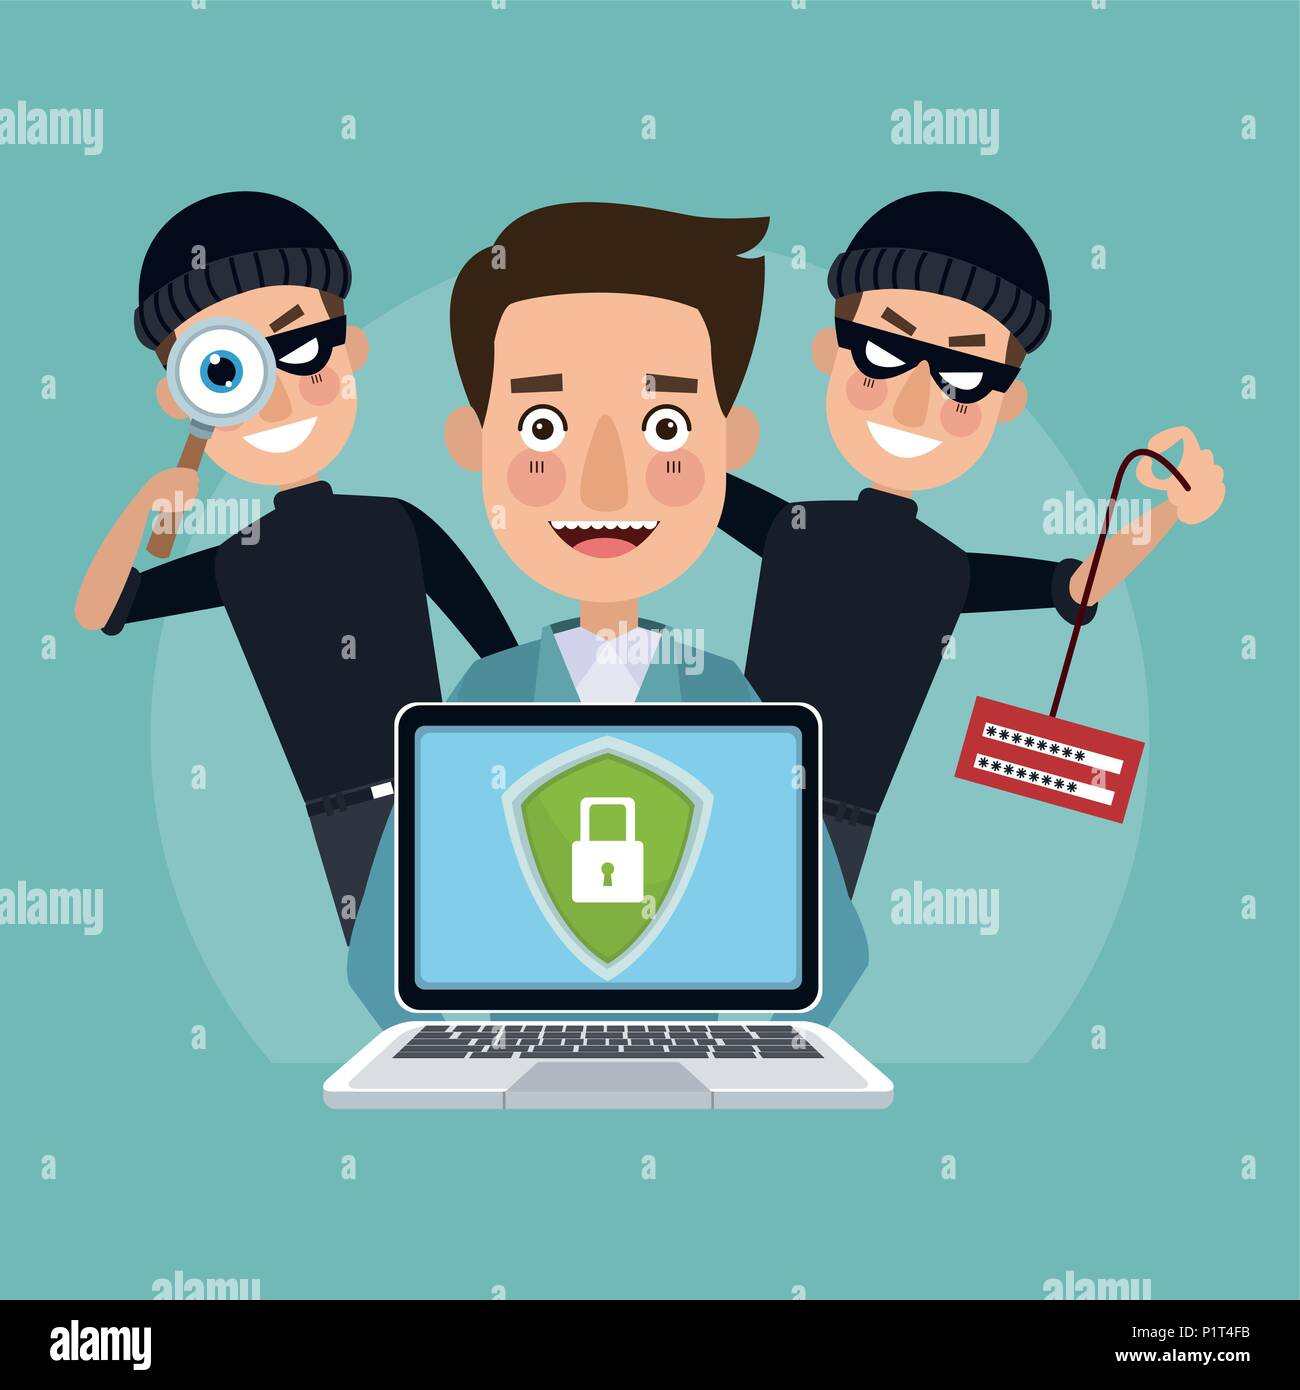 Hacker and security system - Stock Image